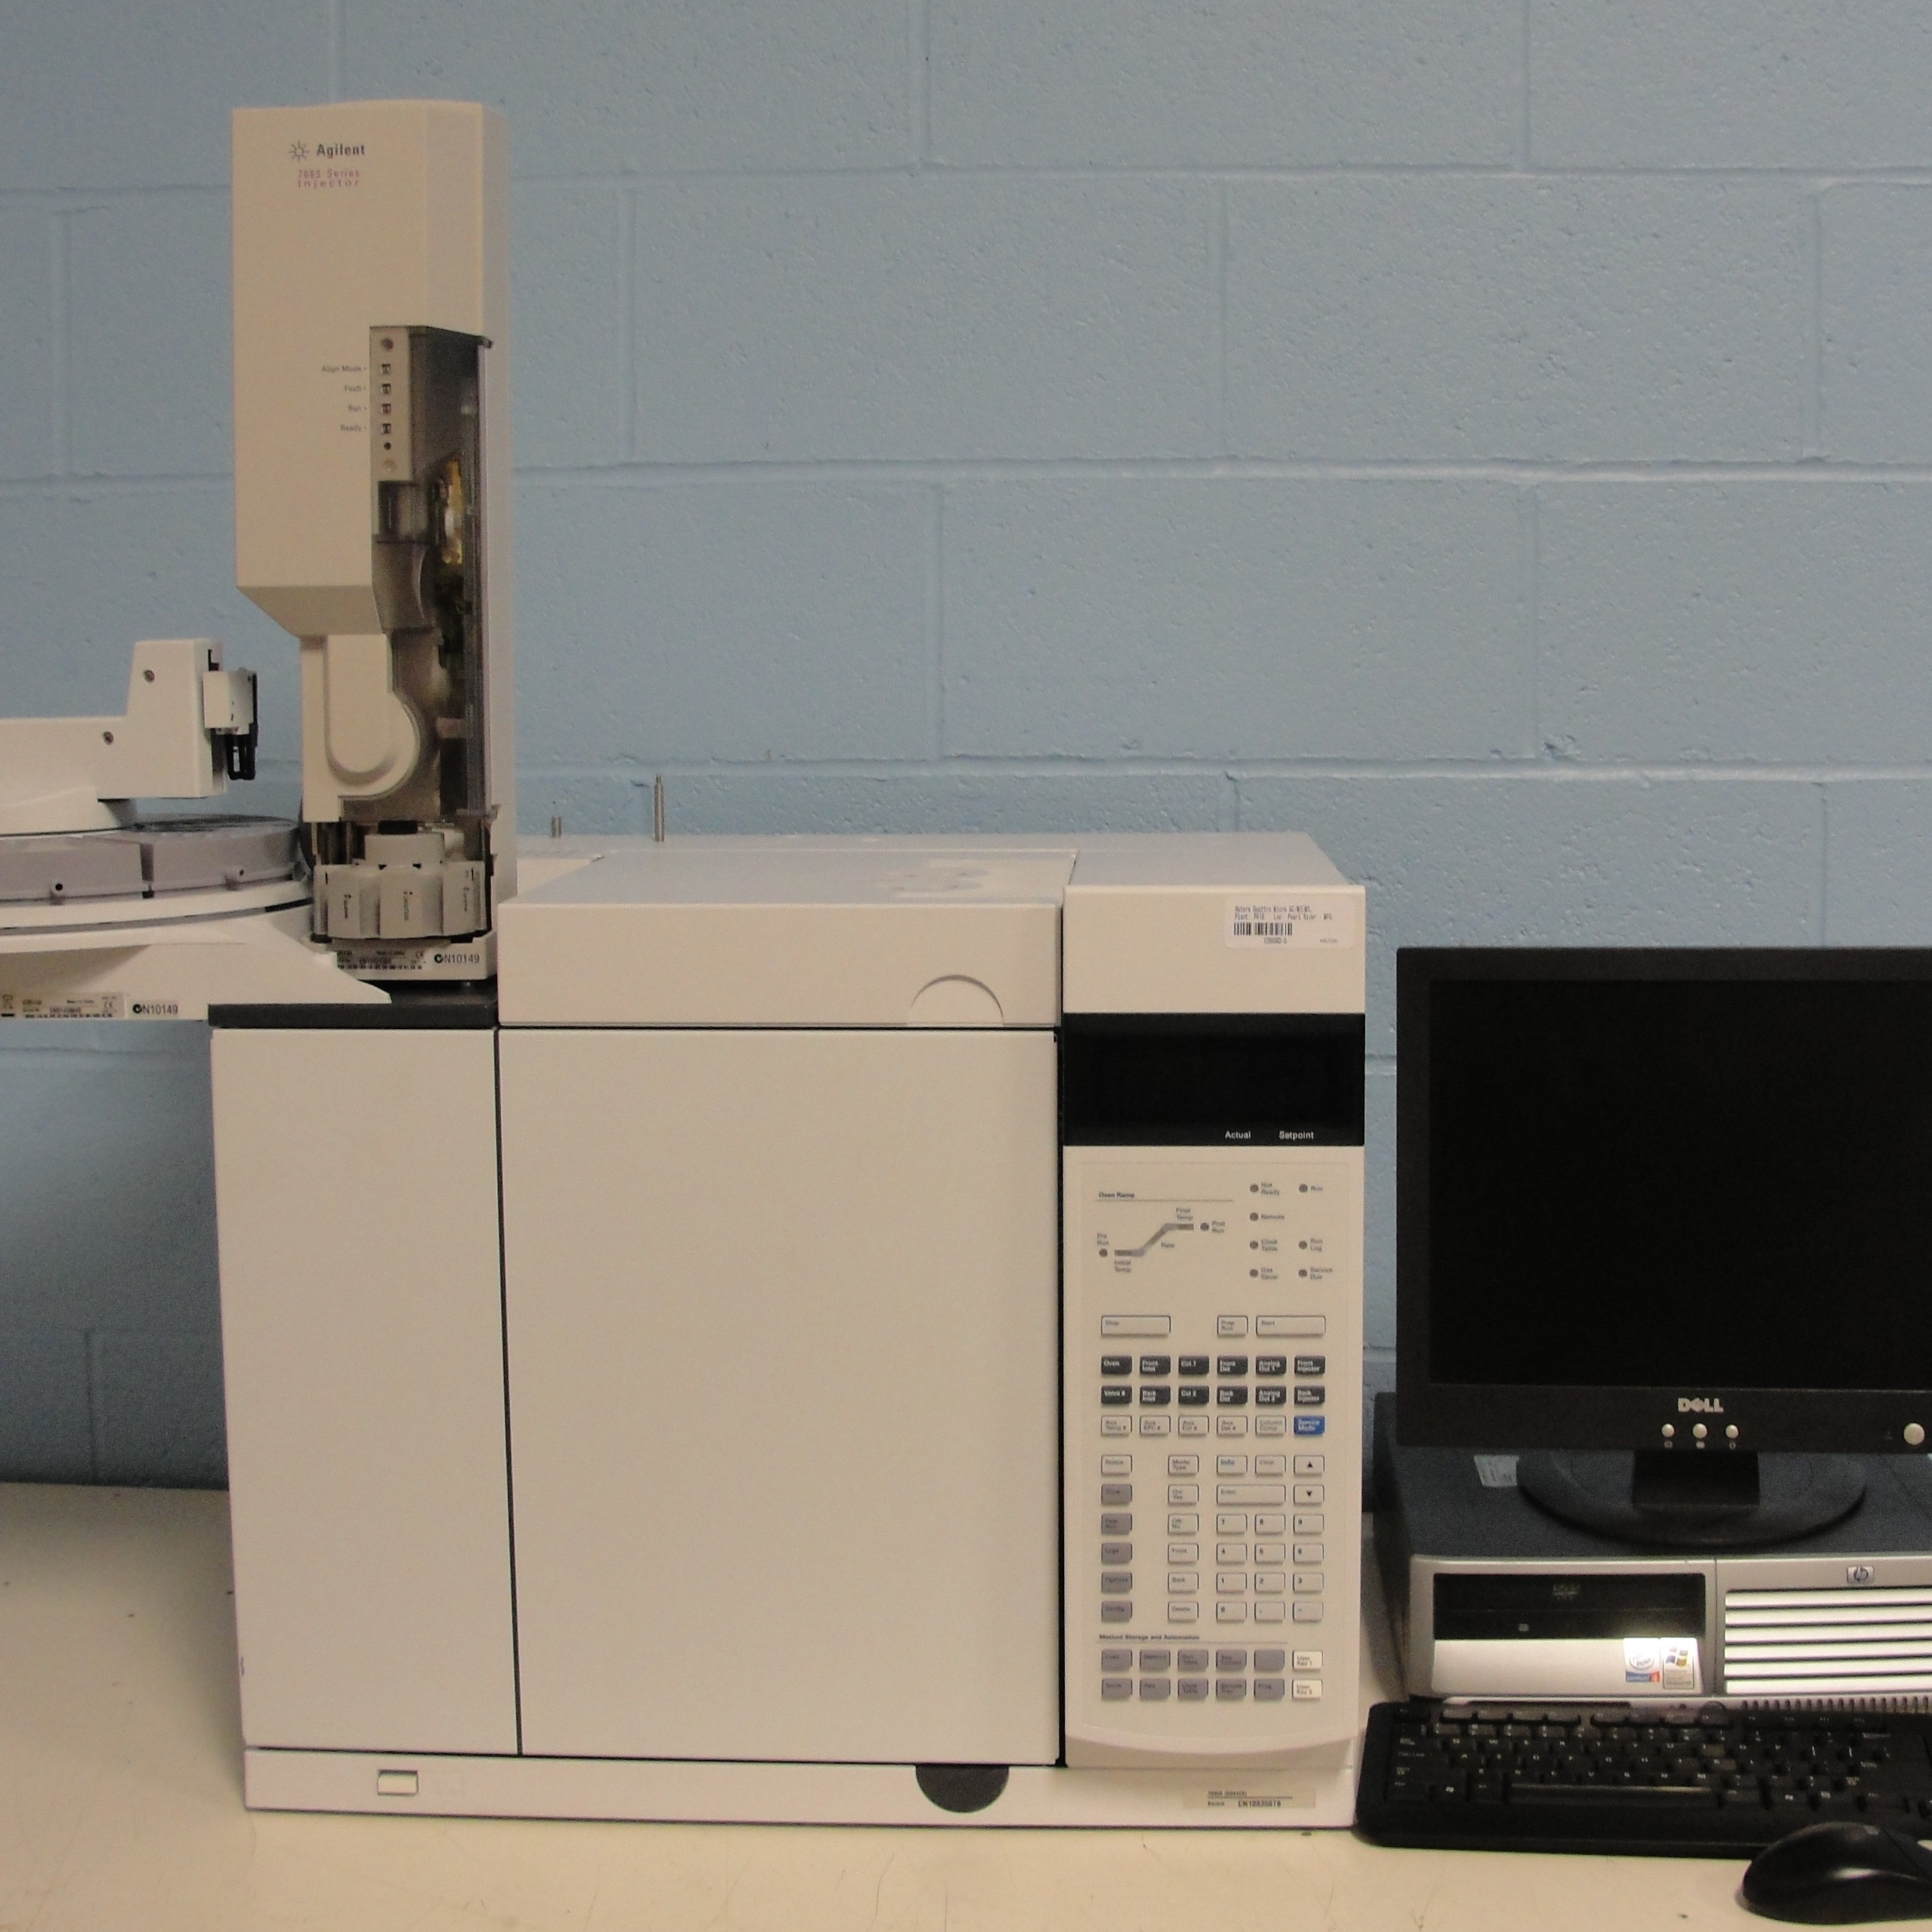 Agilent Technologies 7890A (G3440A) Network Gas Chromatograph System Image